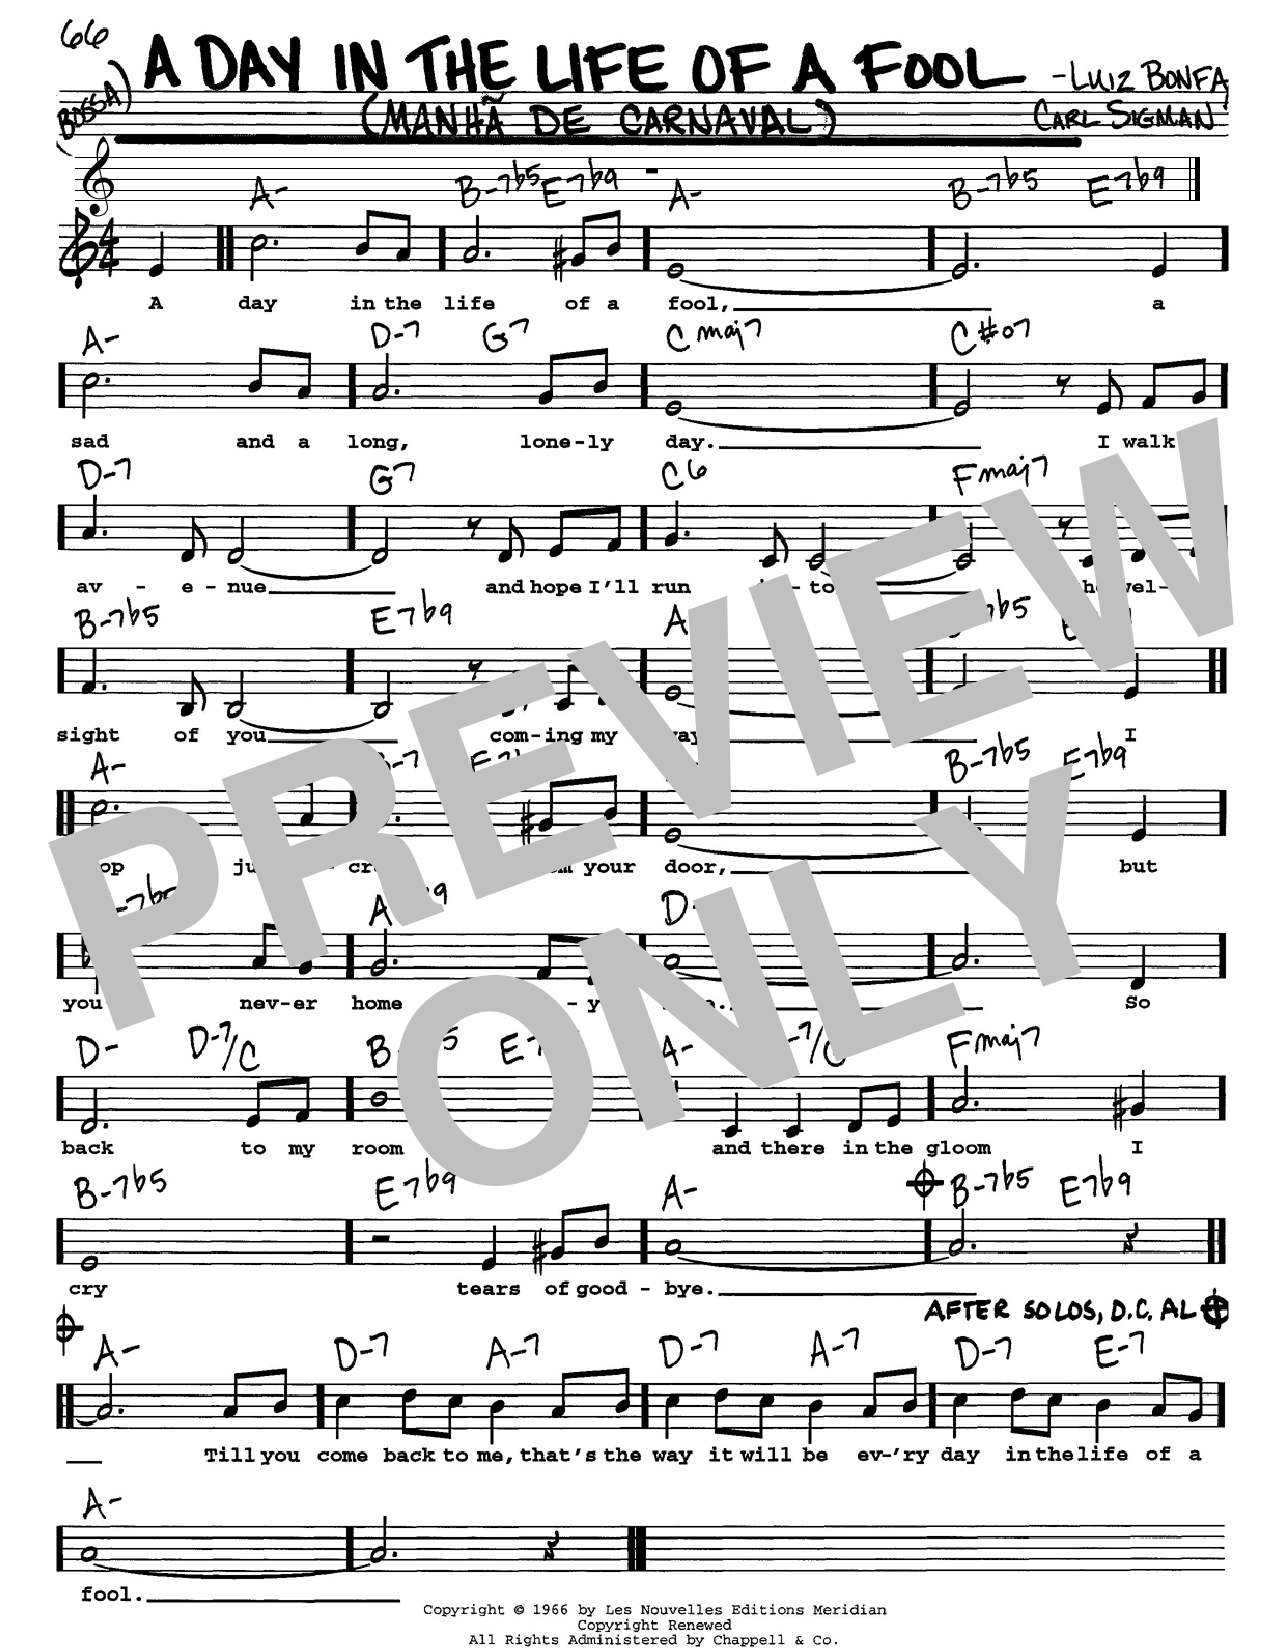 Carl Sigman A Day In The Life Of A Fool (Manha De Carnaval) sheet music notes and chords. Download Printable PDF.